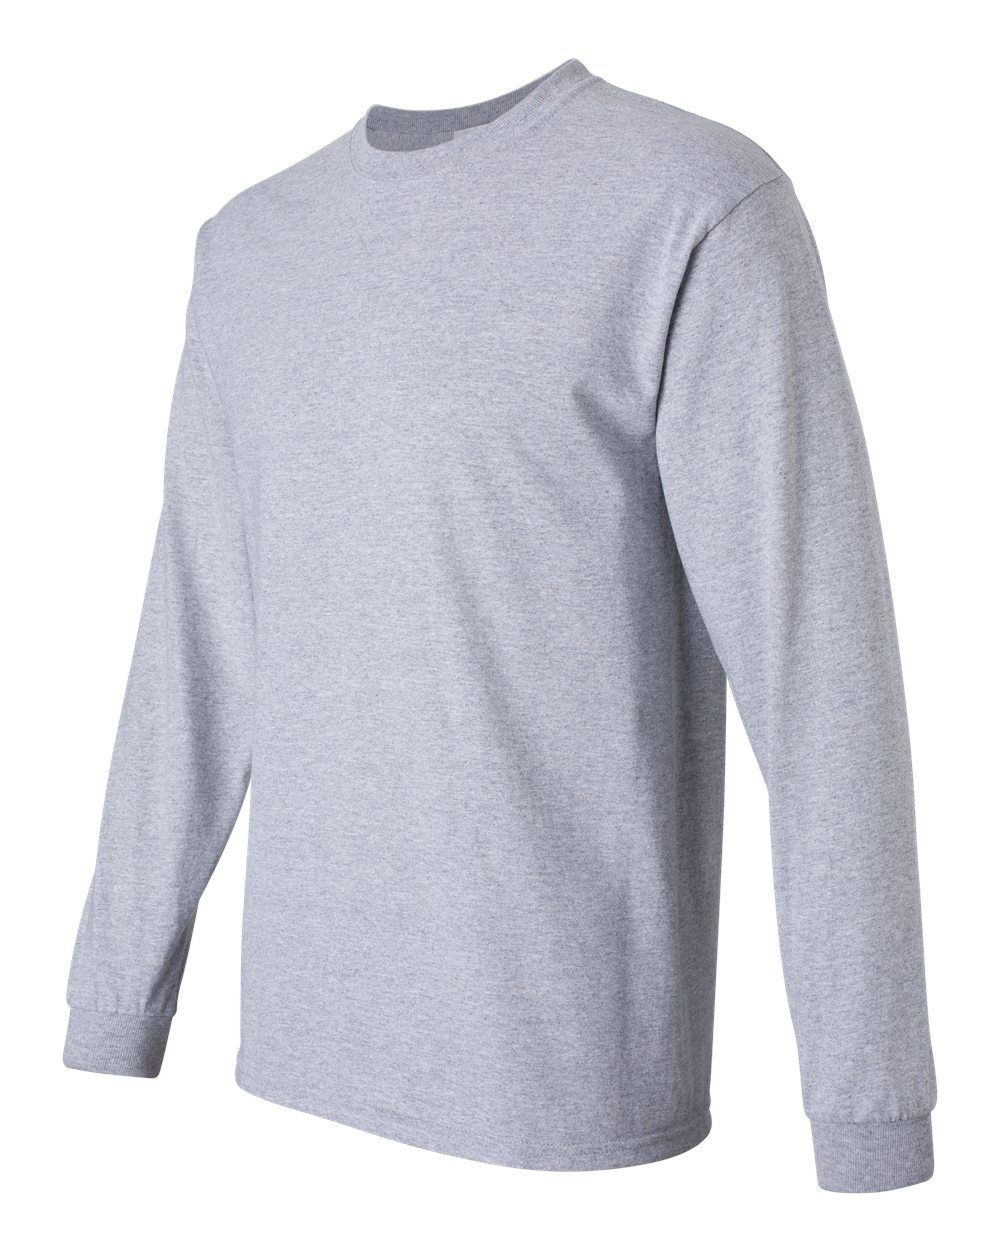 Gildan 2400 Ultra Cotton Long Sleeve T Shirt Friendly